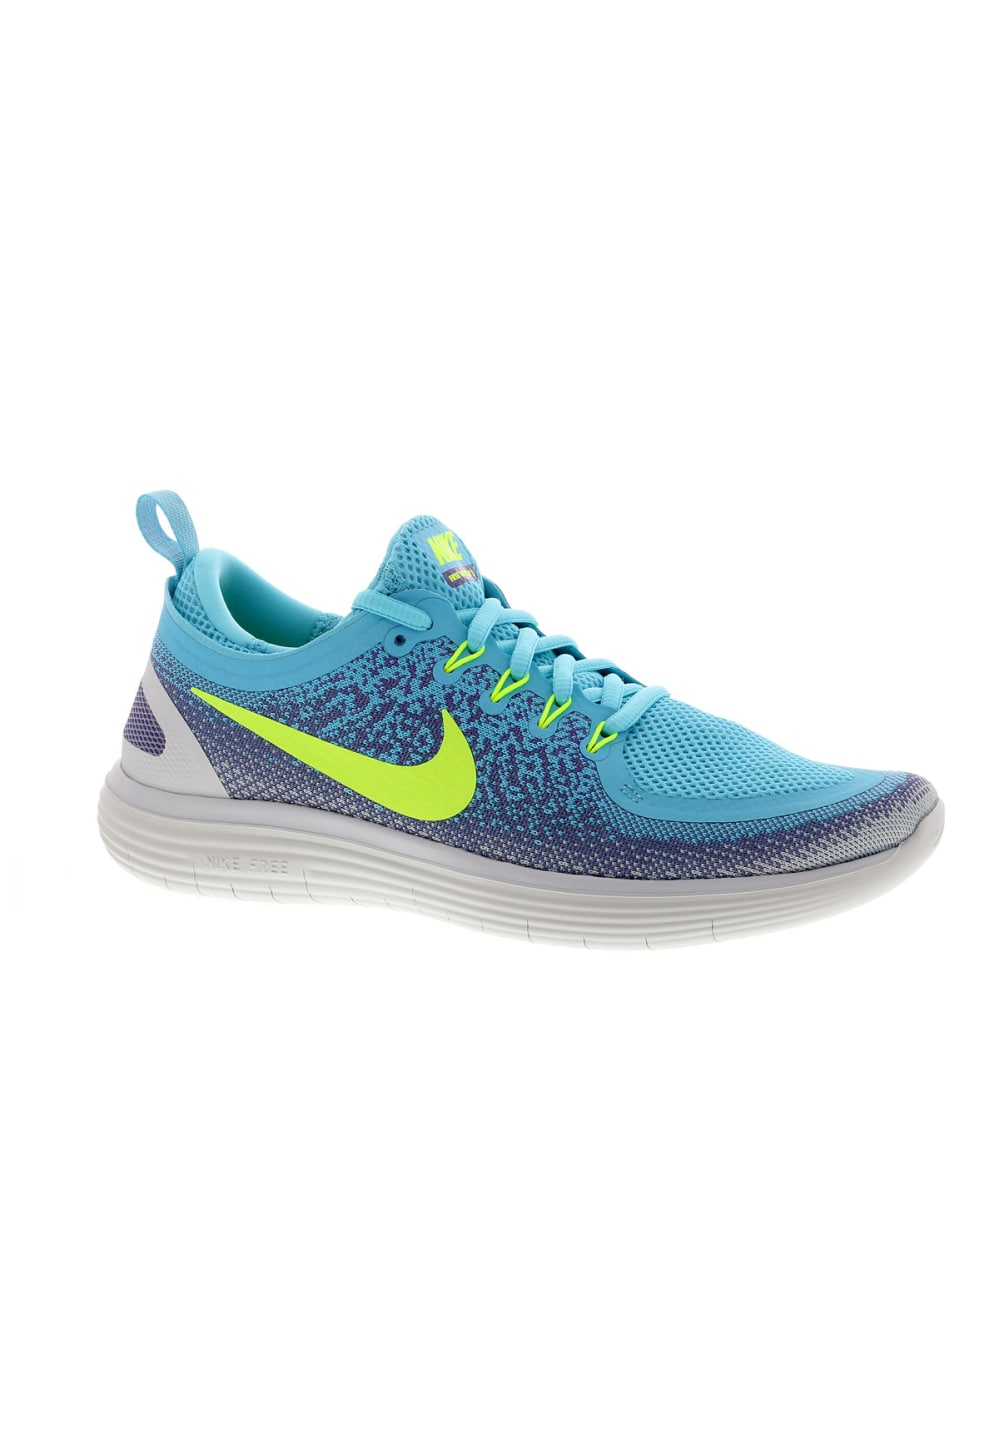 best website 7078a f2571 Nike Free RN Distance 2 - Running shoes for Women - Blue